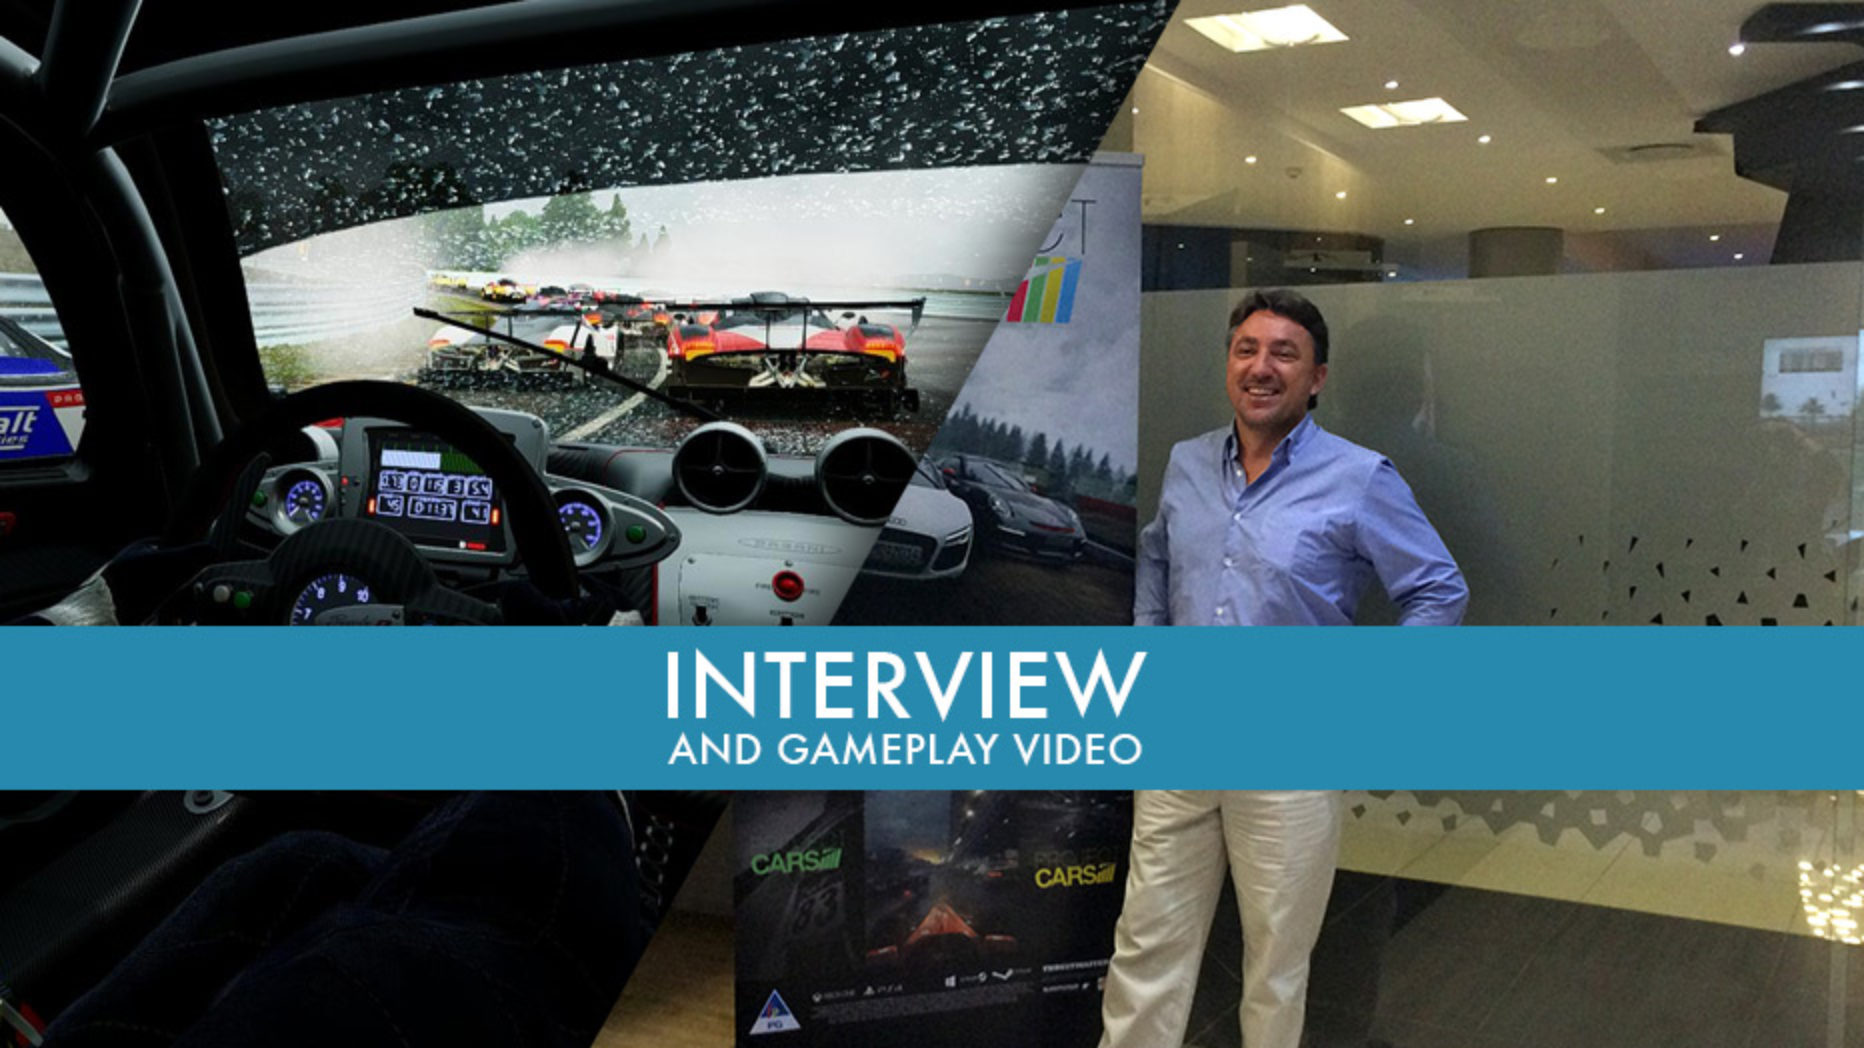 Project CARS: The Forza and Gran Turismo Killer? | Interview and Gameplay Video